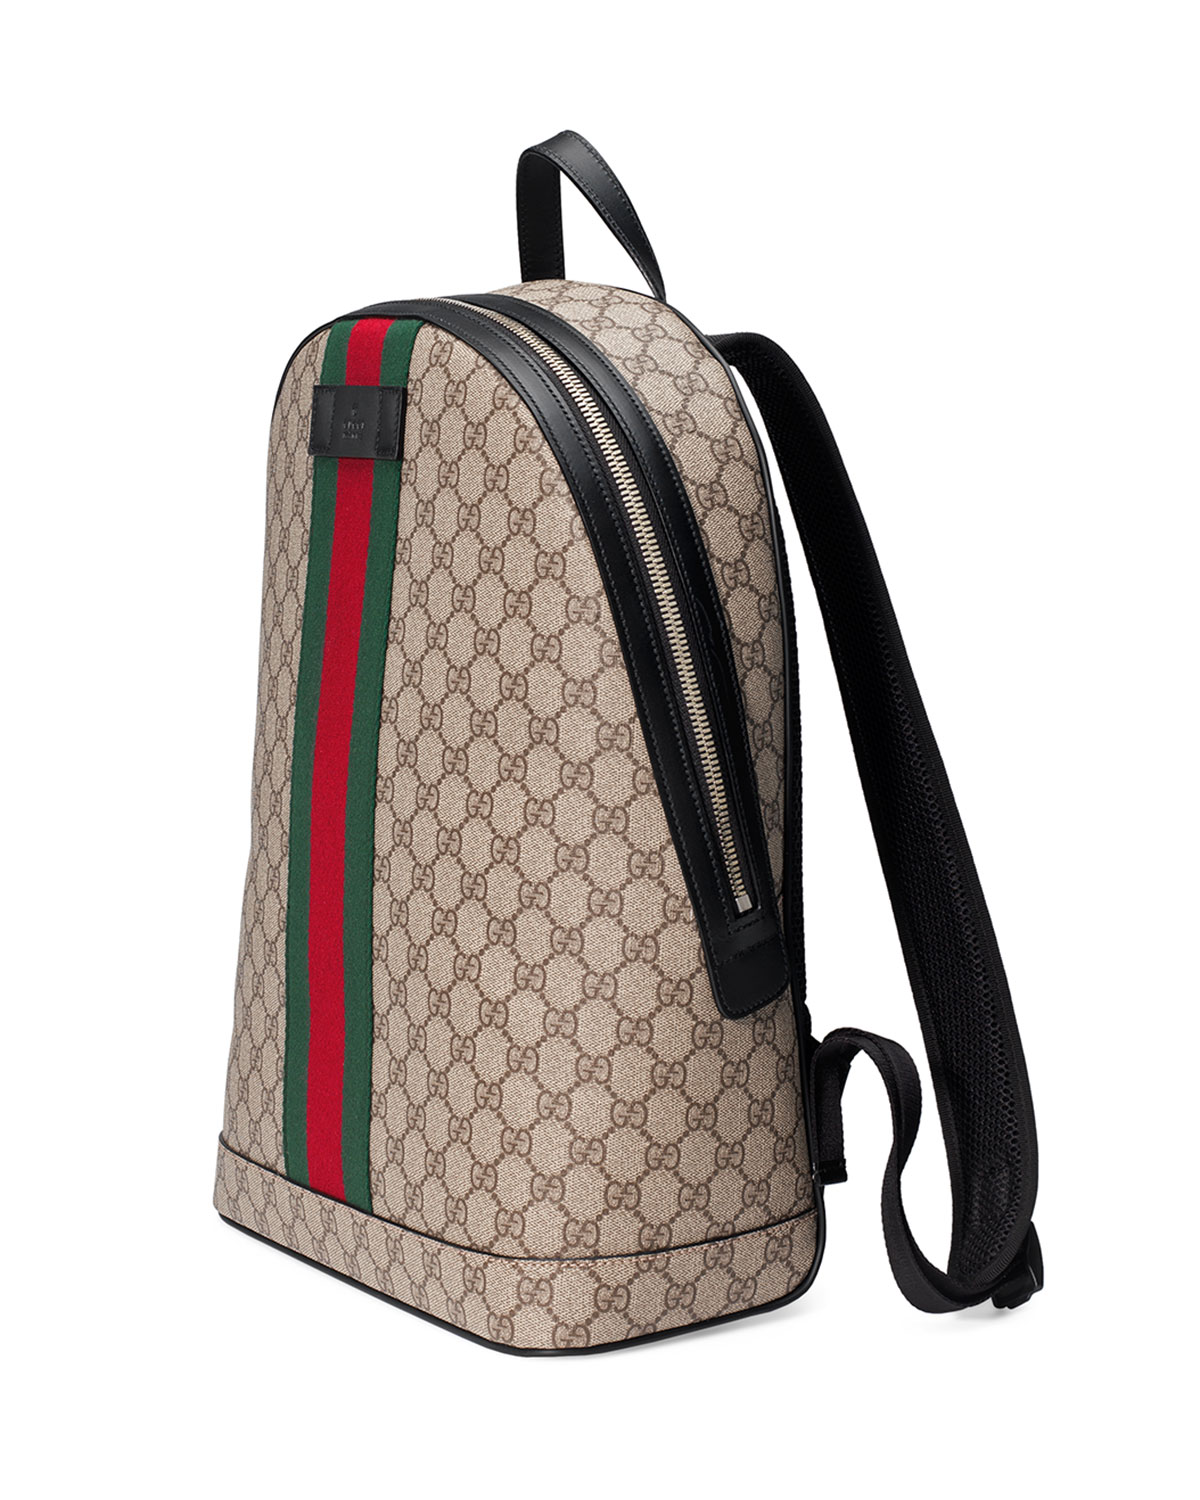 5278fa0f7 Gucci Men's GG Supreme Web Backpack with Laptop Sleeve | Neiman Marcus